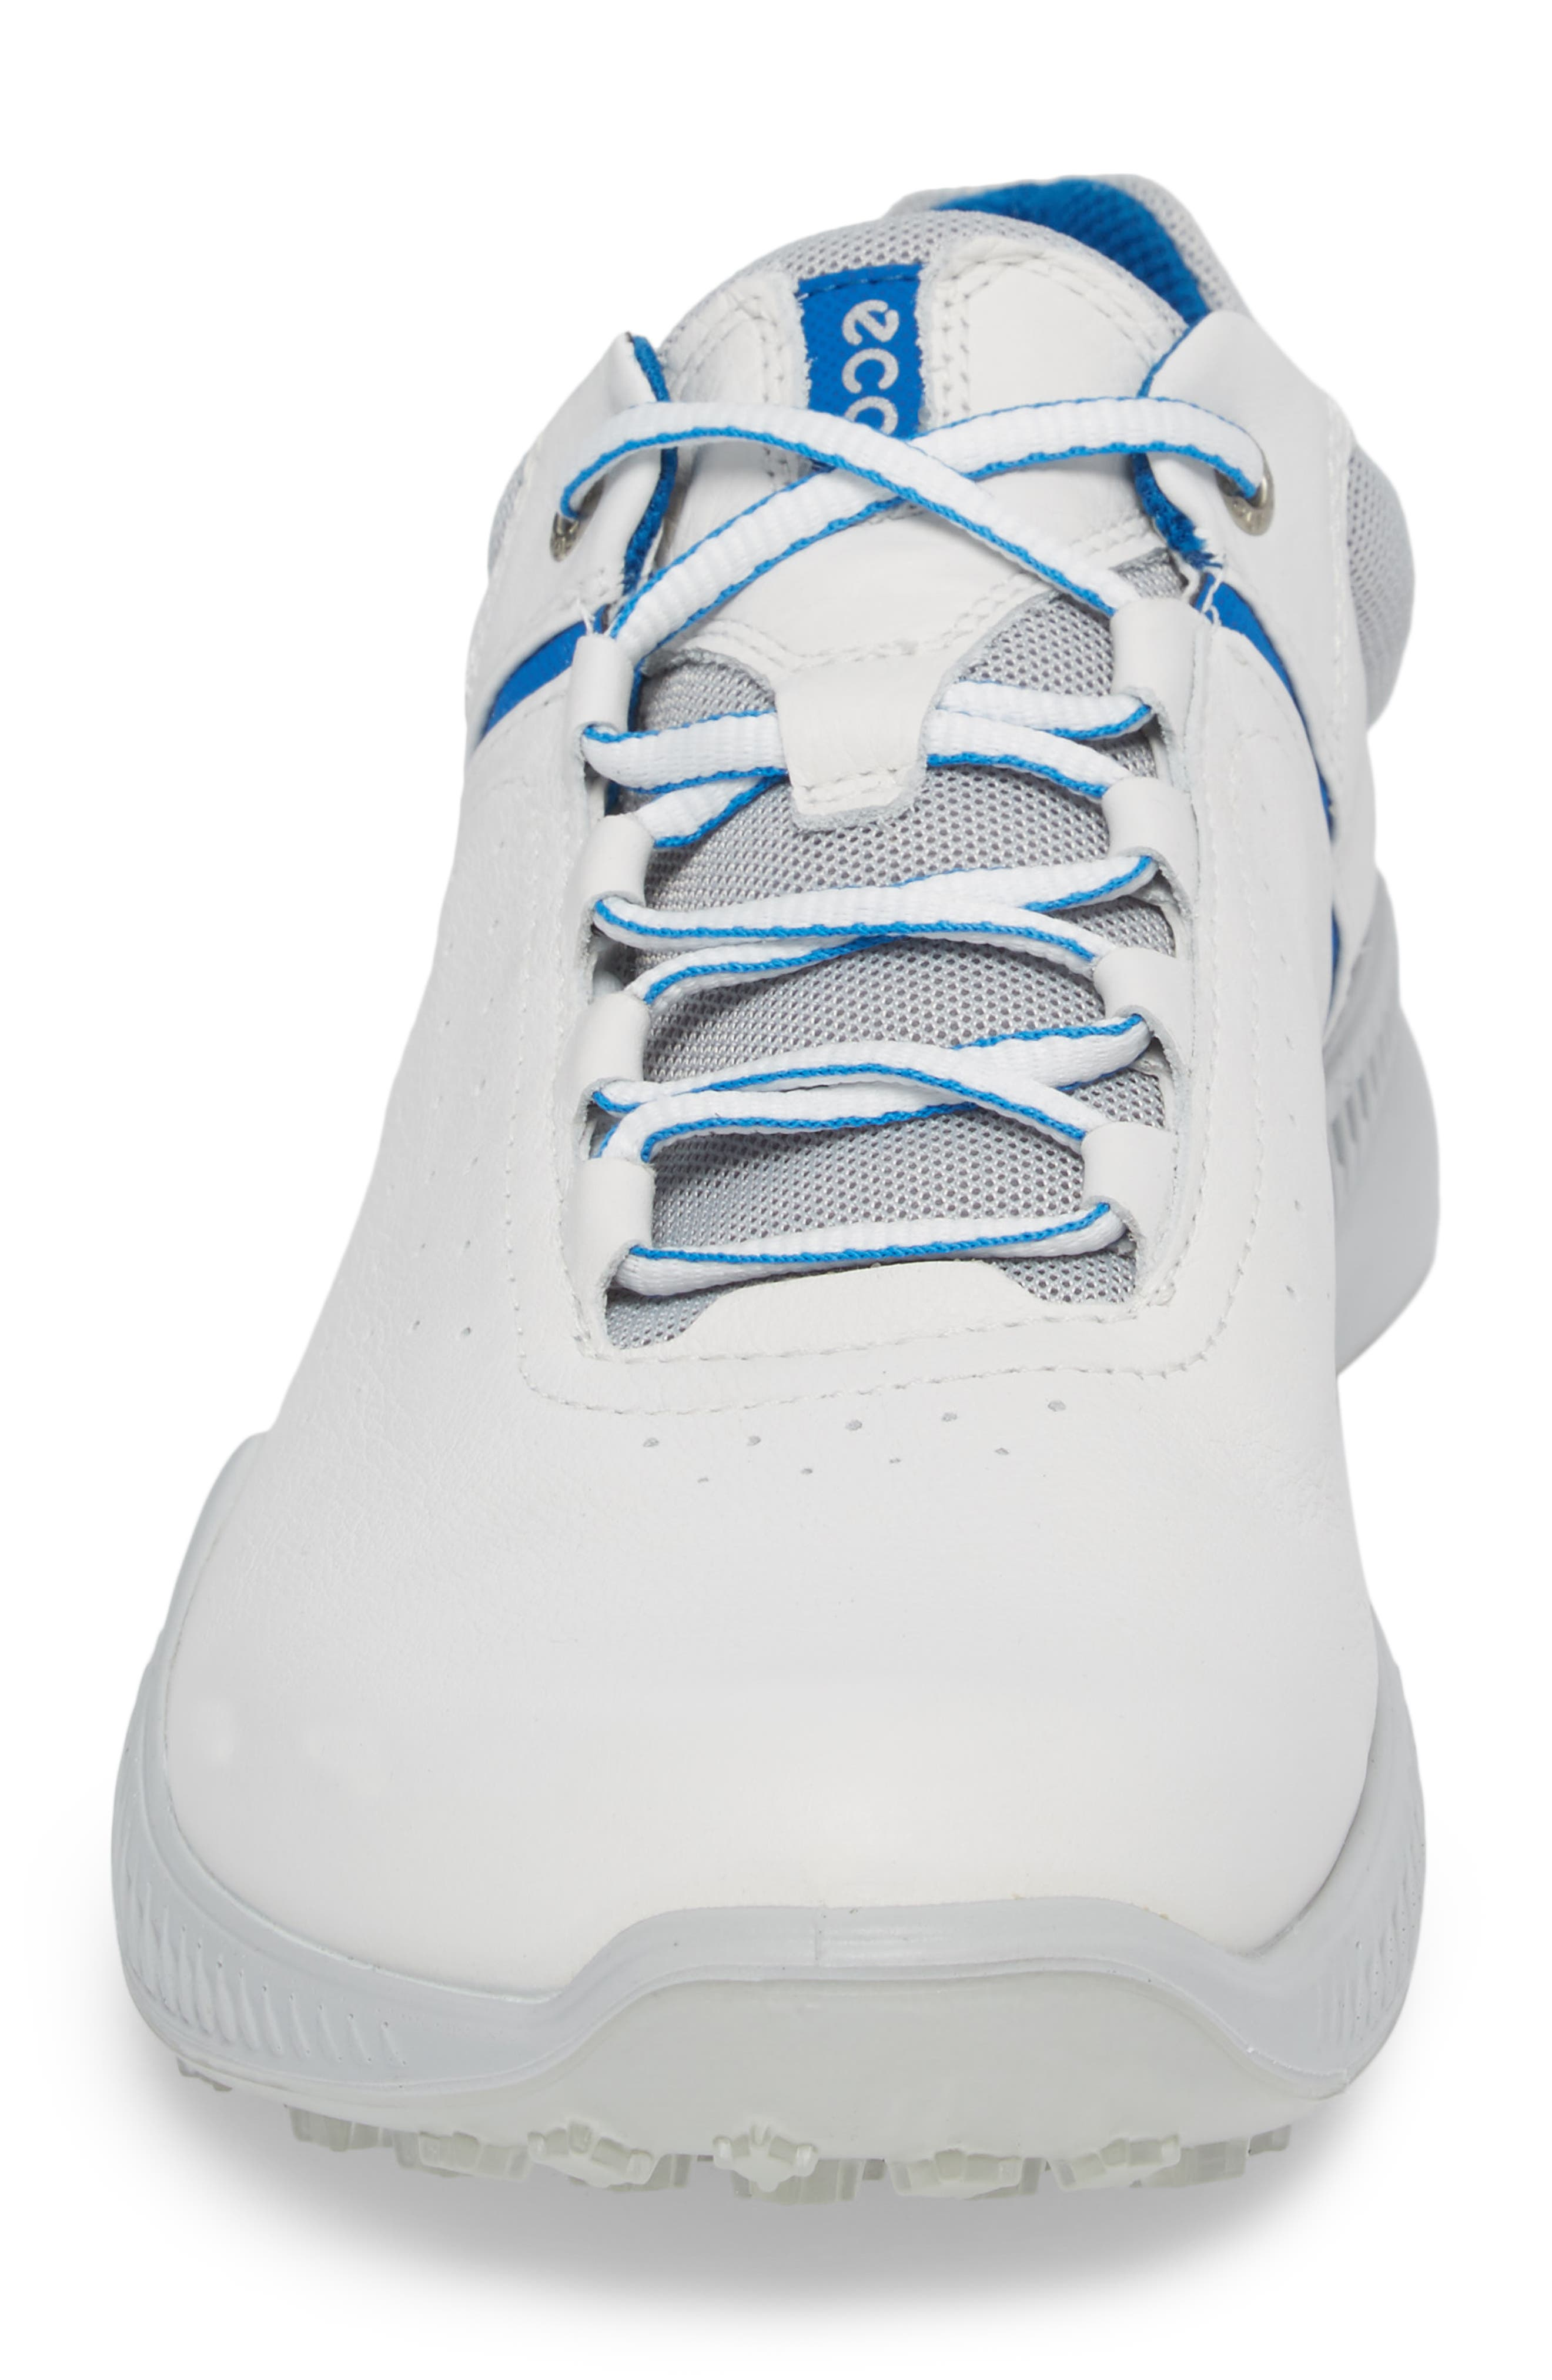 S-Drive Water Repellent Golf Shoe,                             Alternate thumbnail 4, color,                             White Leather